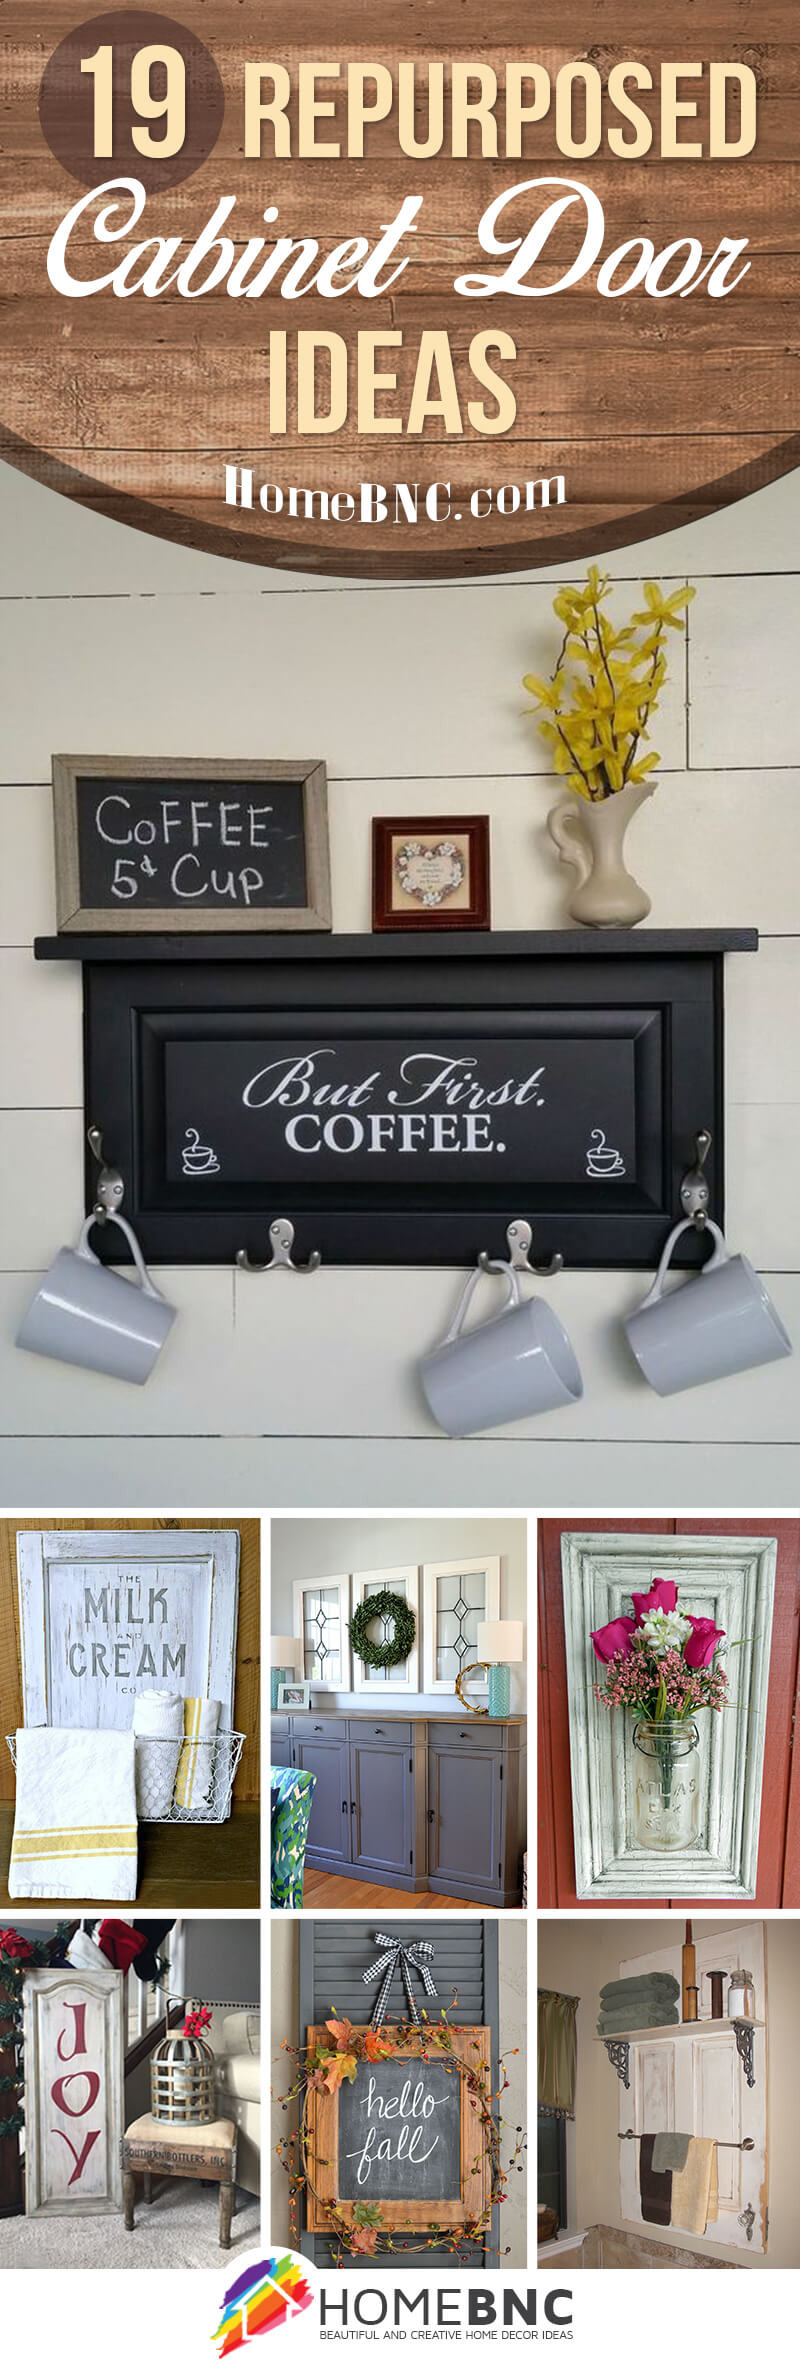 repurposed cabinet door design ideas pinterest share homebnc